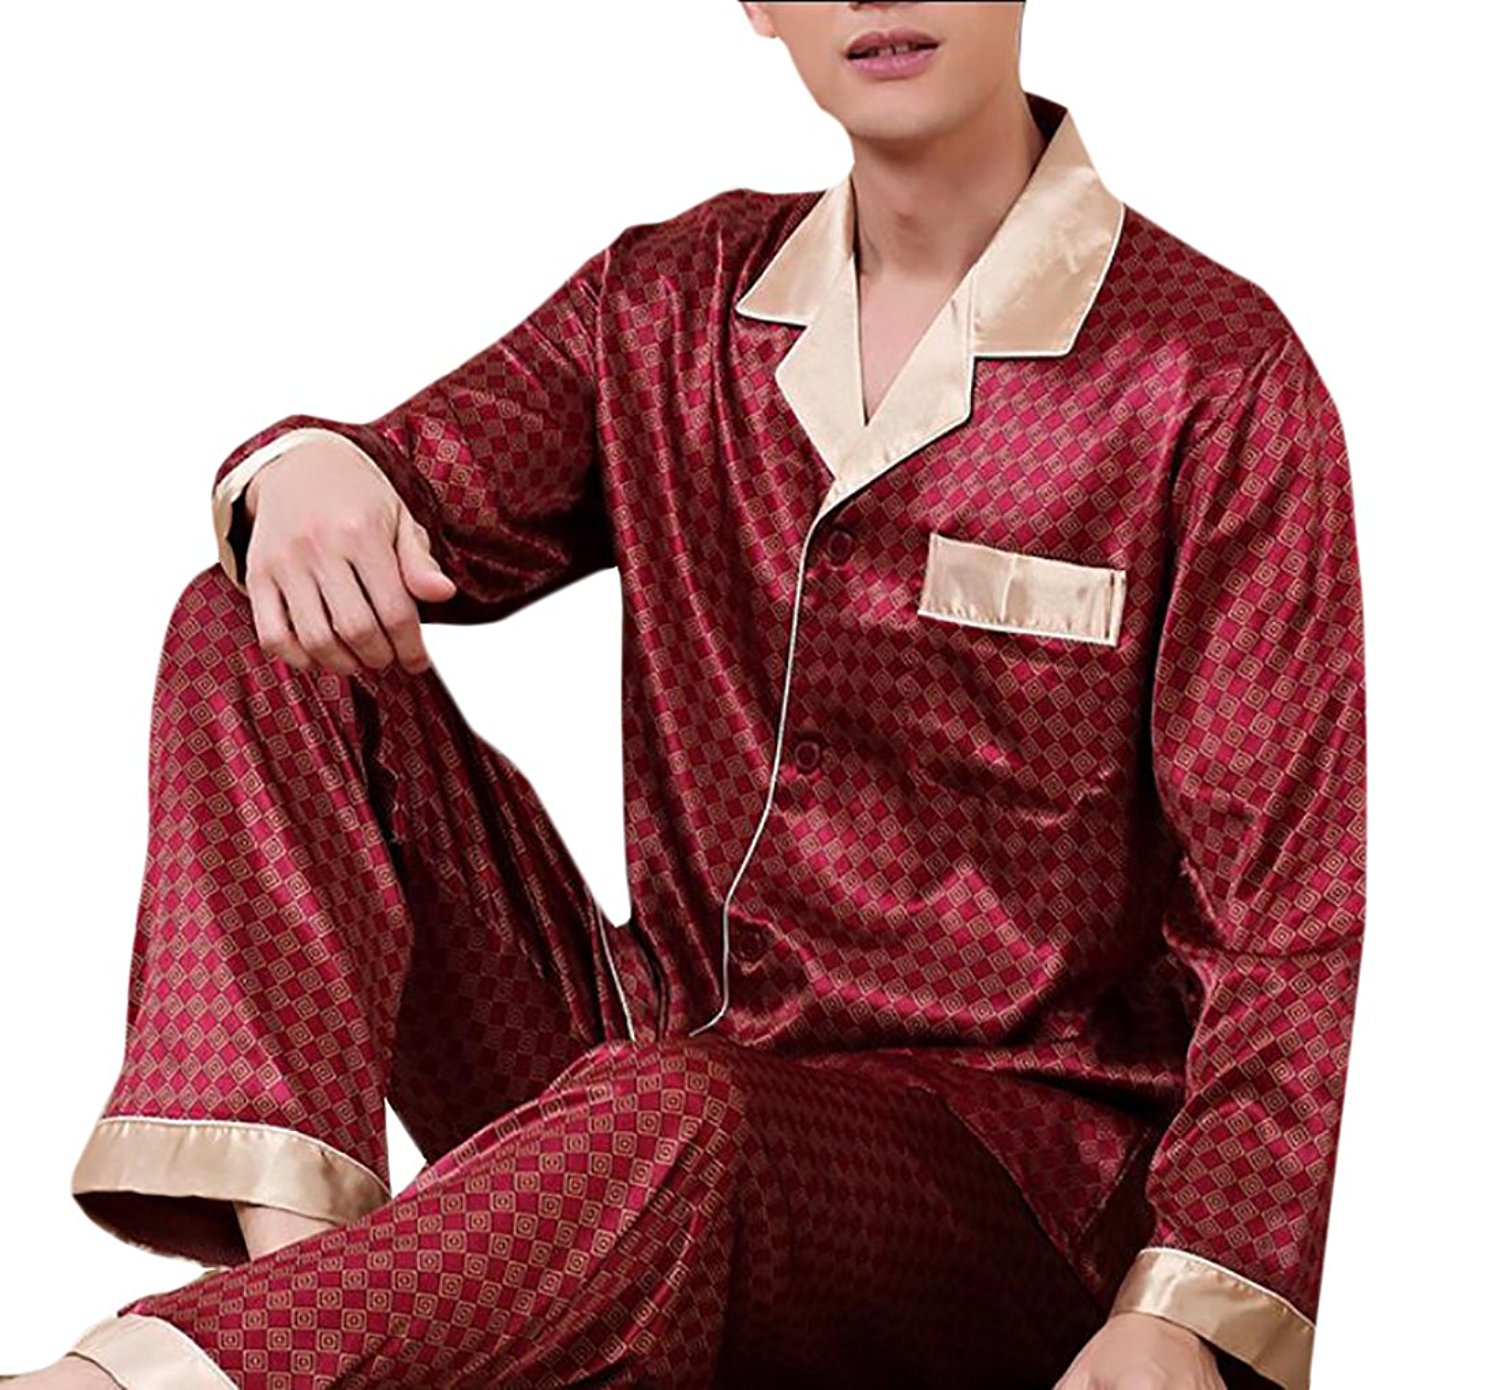 d89e104c87 Get Quotations · Pivaconis Mens Warm Silk Pajamas Set For Most Comfortable  Sleepwear